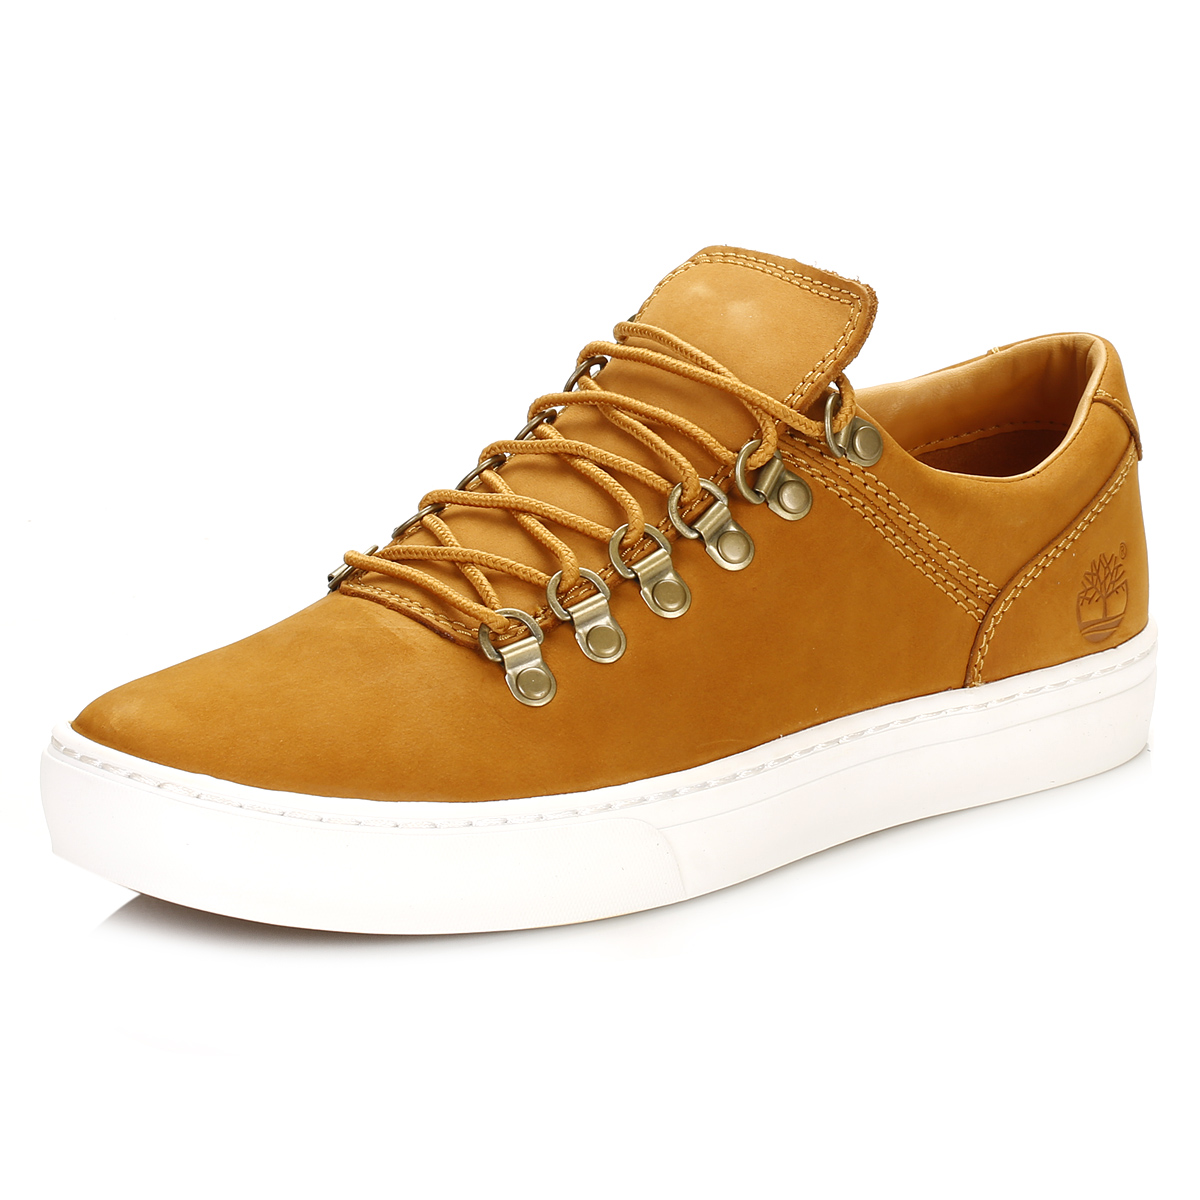 timberland mens tan trainers adventure 2 0 cupsole alpine ox nubuck shoes ebay. Black Bedroom Furniture Sets. Home Design Ideas